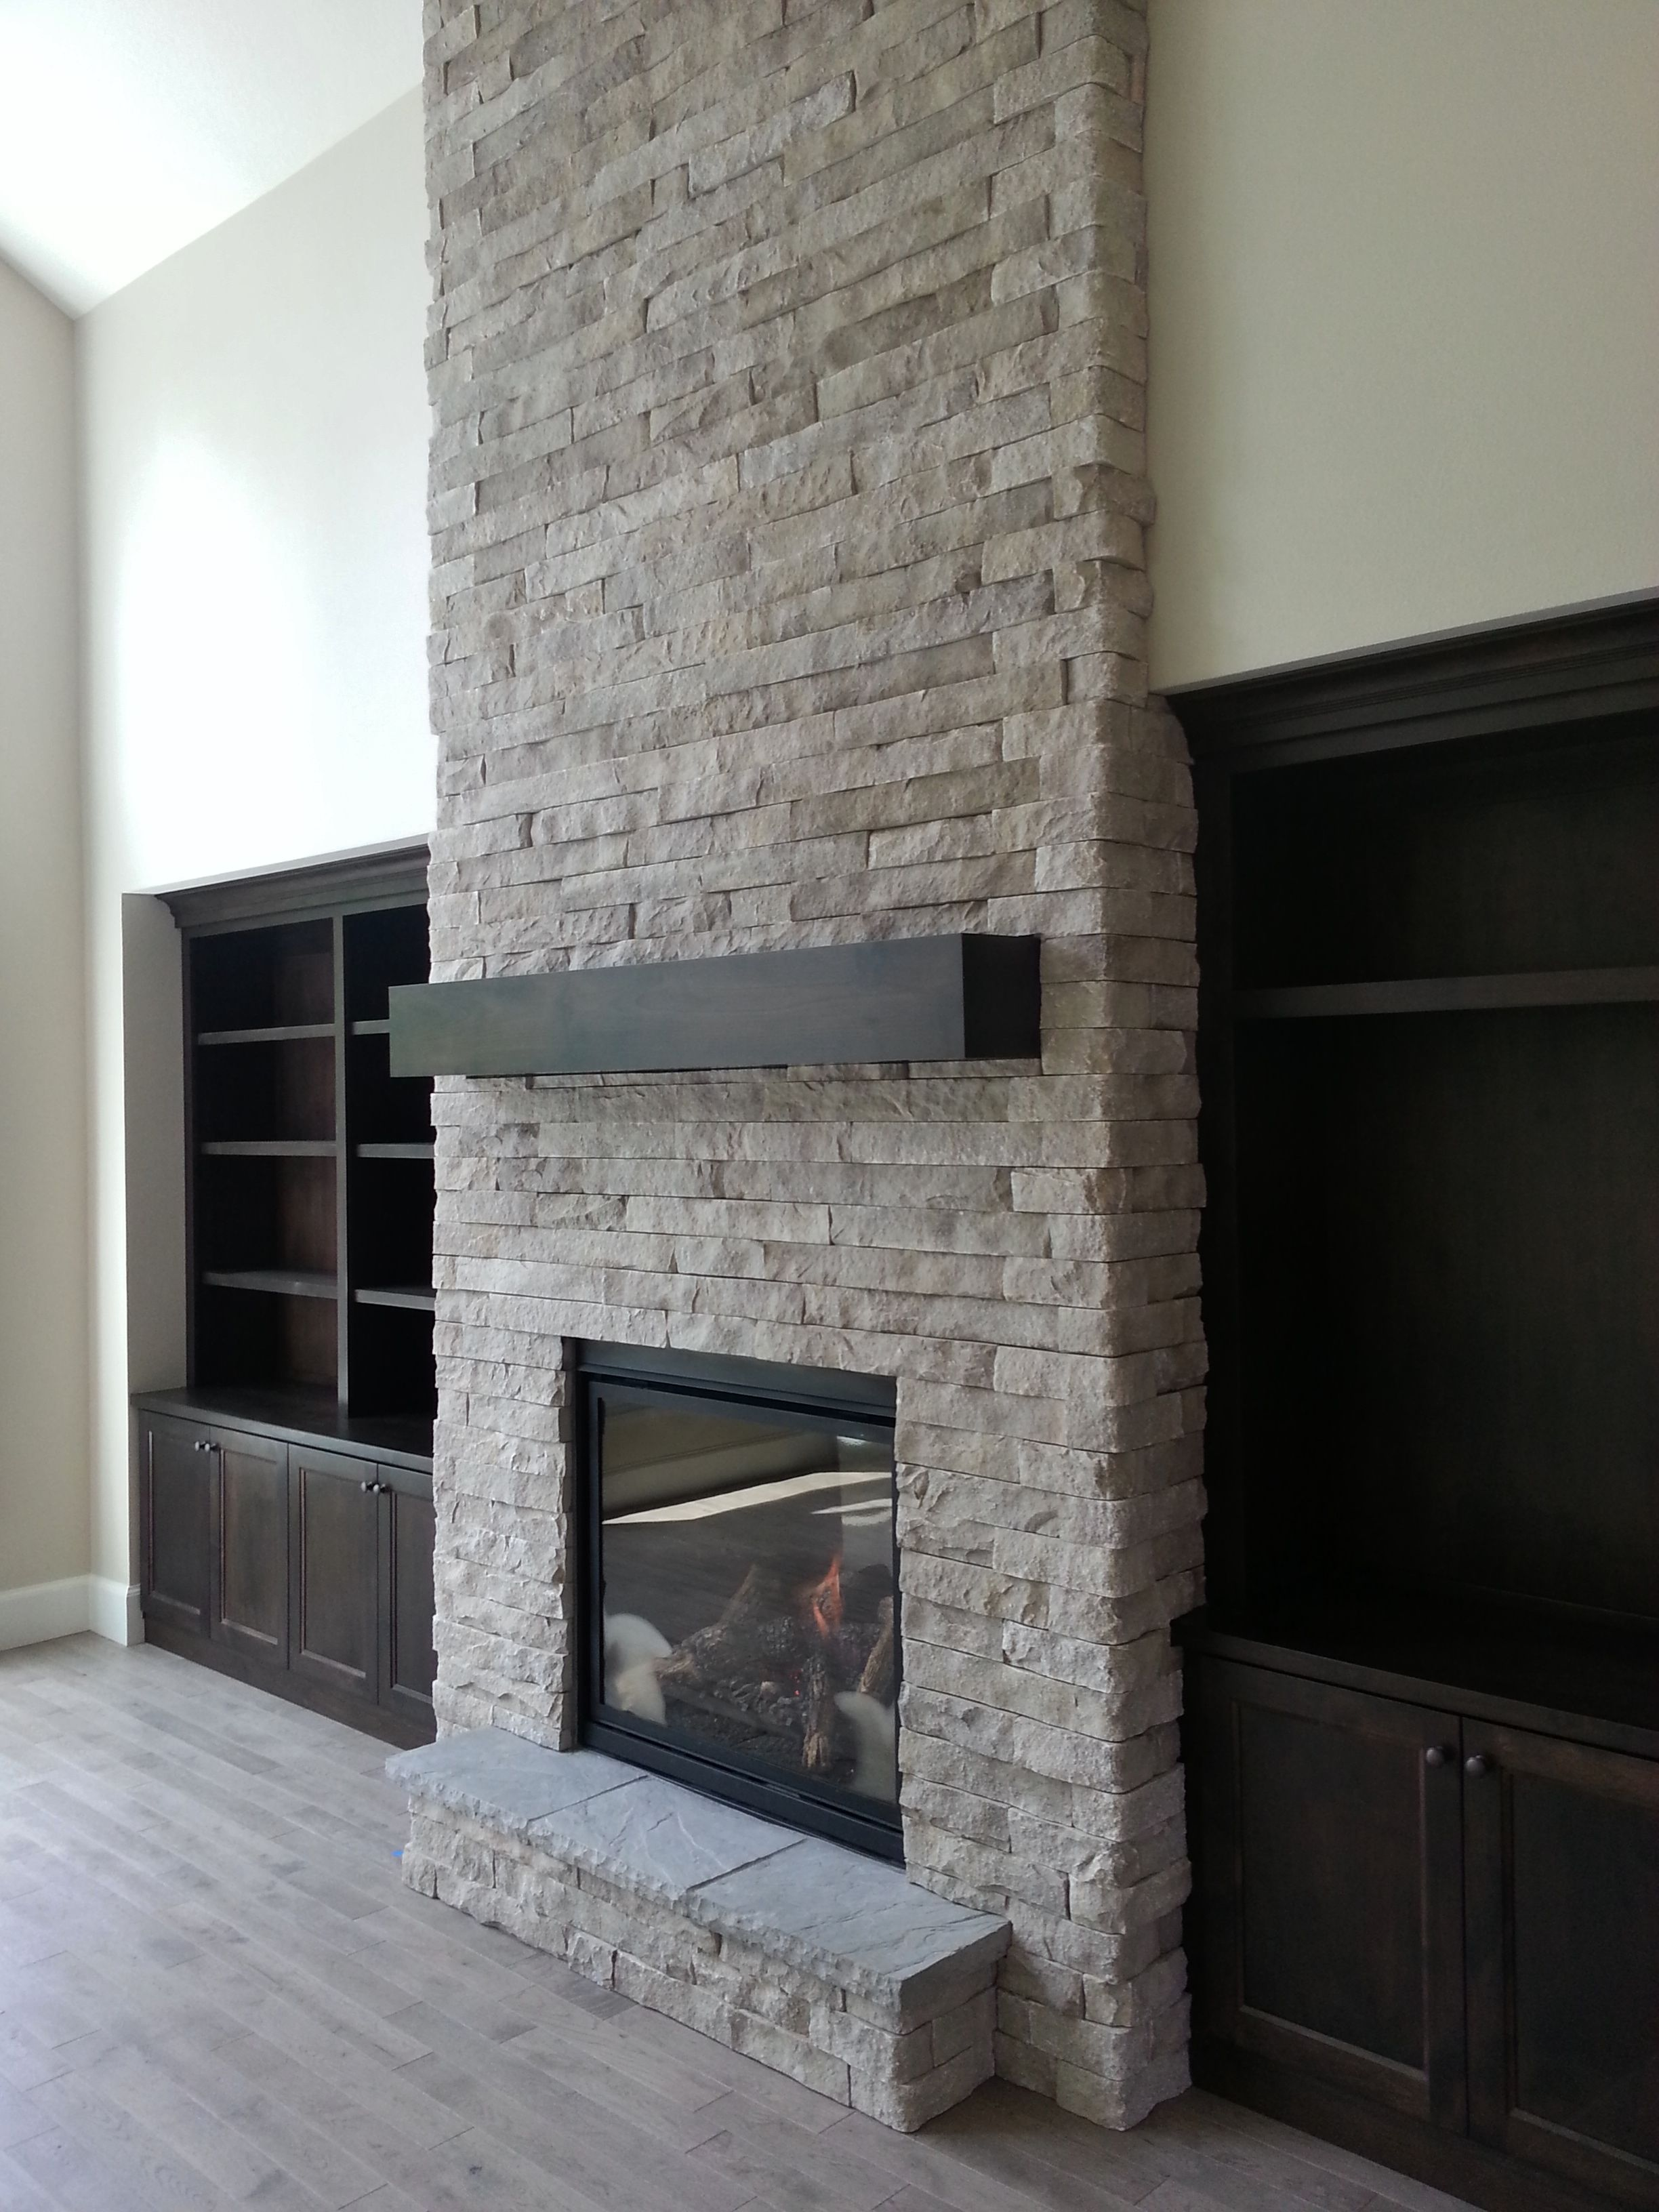 Design Stone Around Fireplace new construction indoor fireplace stone built ins around living